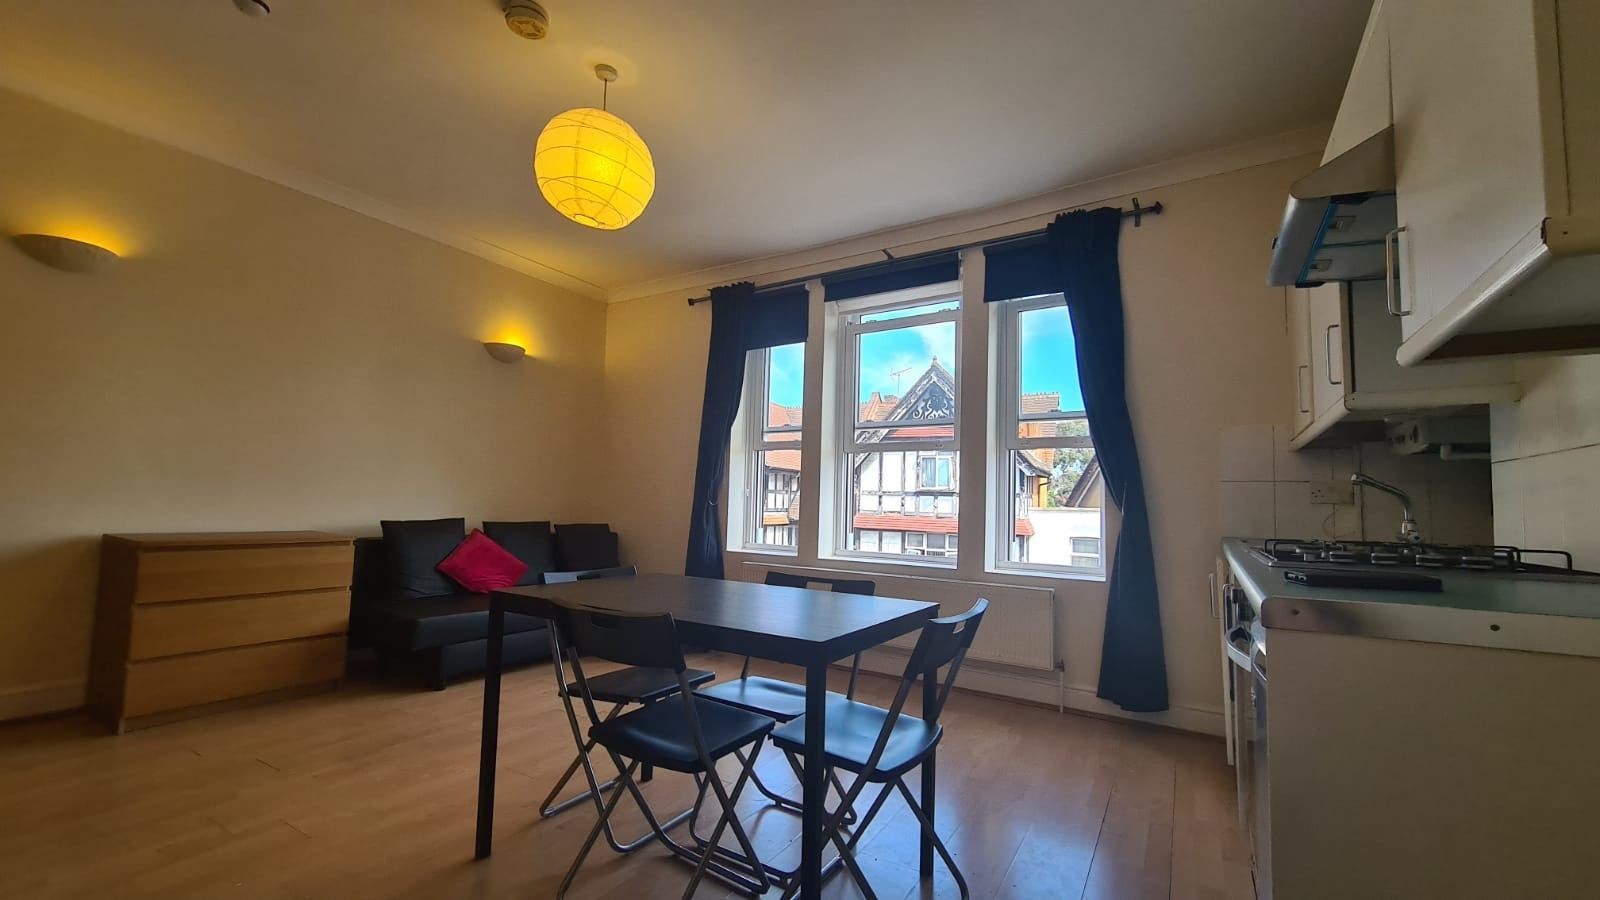 1 bedroom studio flat/apartment Let in Willesden Green - Double Studio